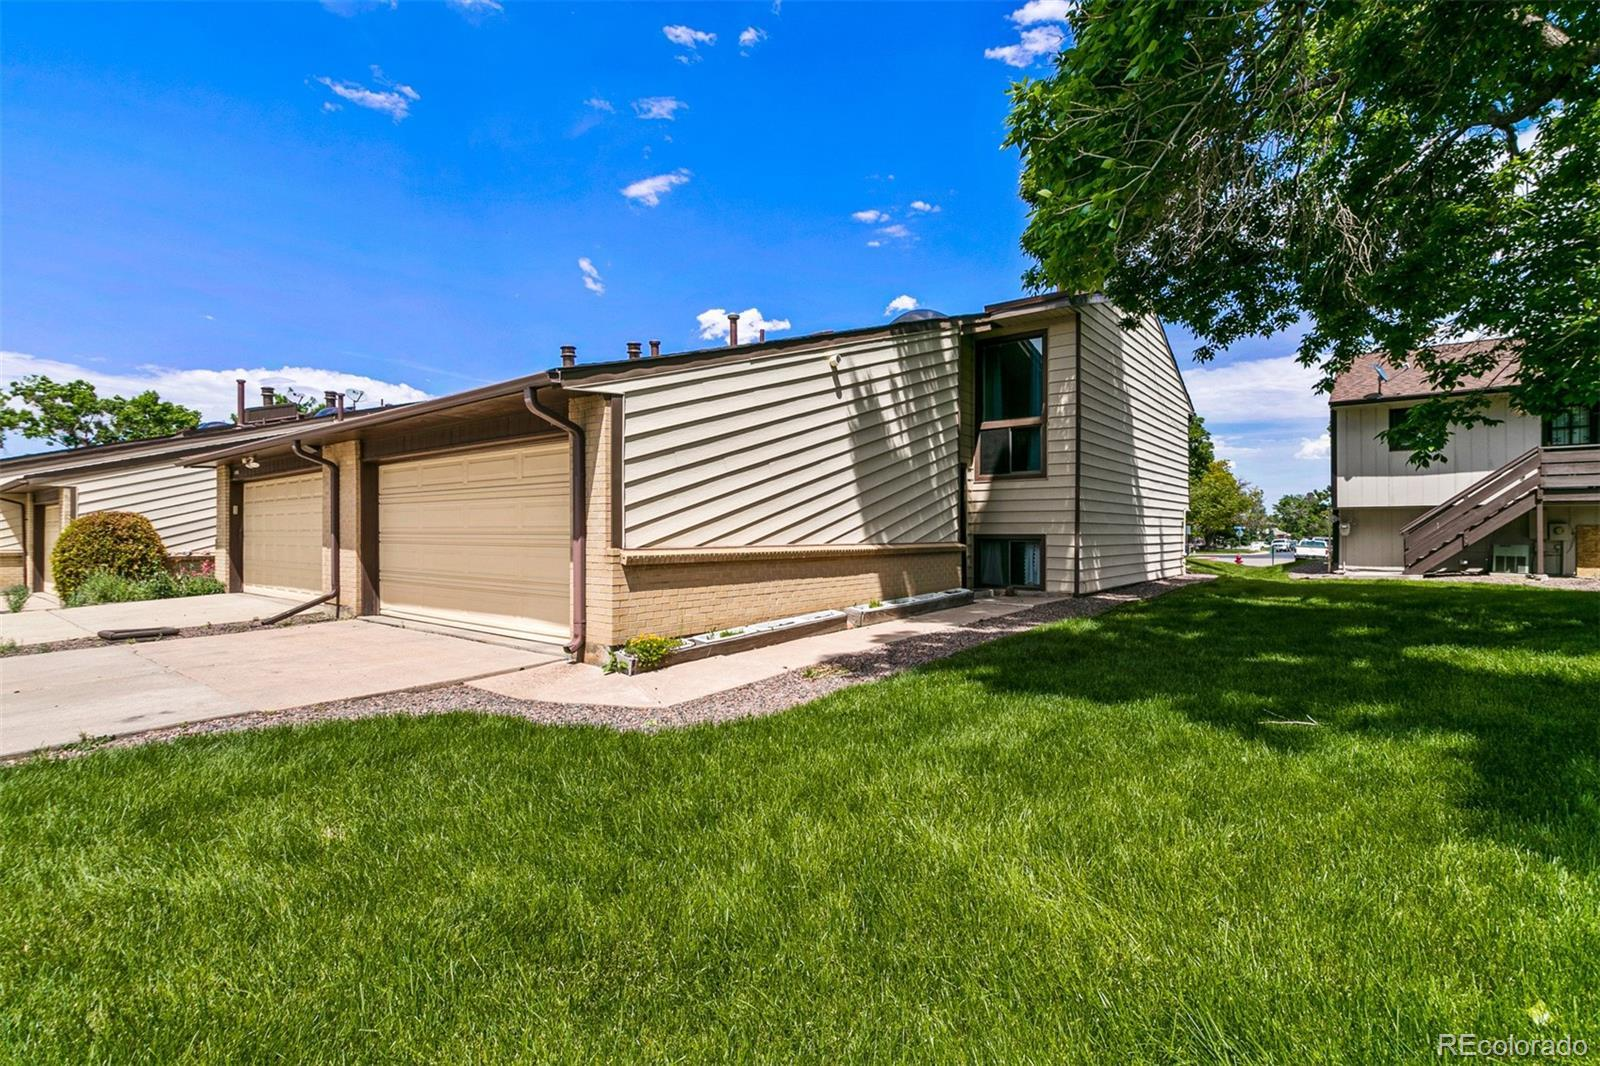 1154 S Newland Place, Lakewood, CO 80232 - #: 8833452